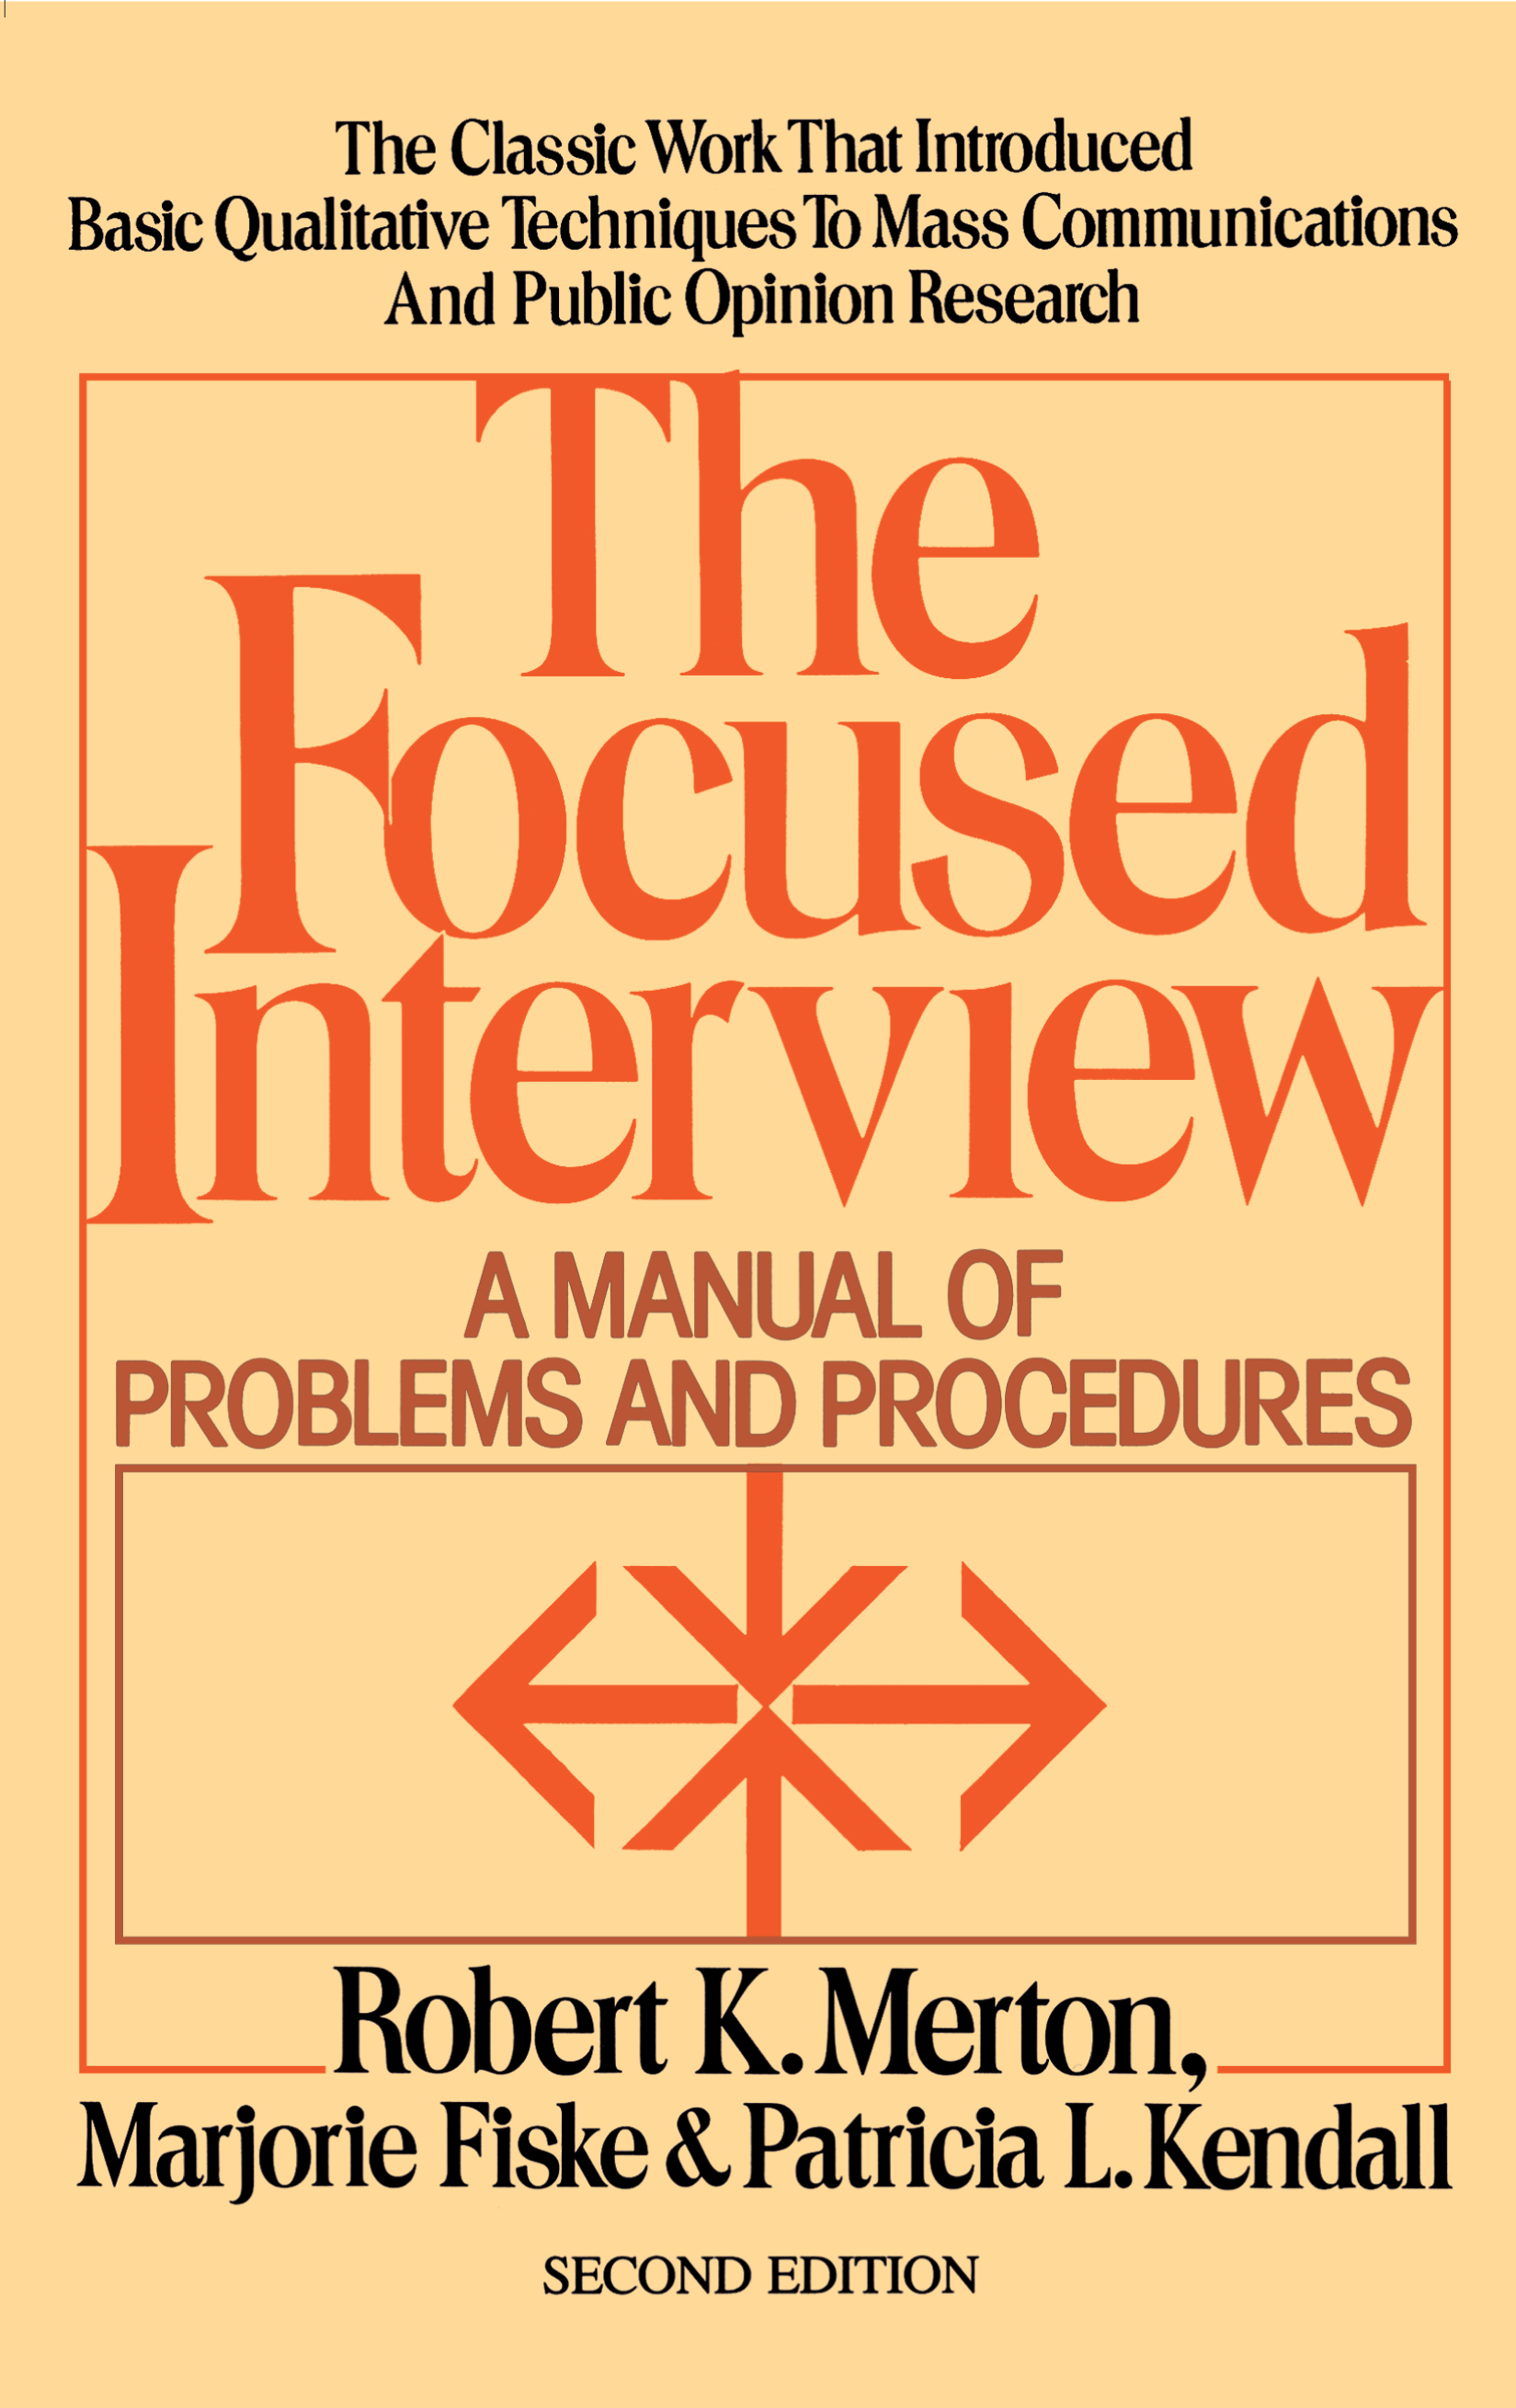 book cover image jpg focused interview